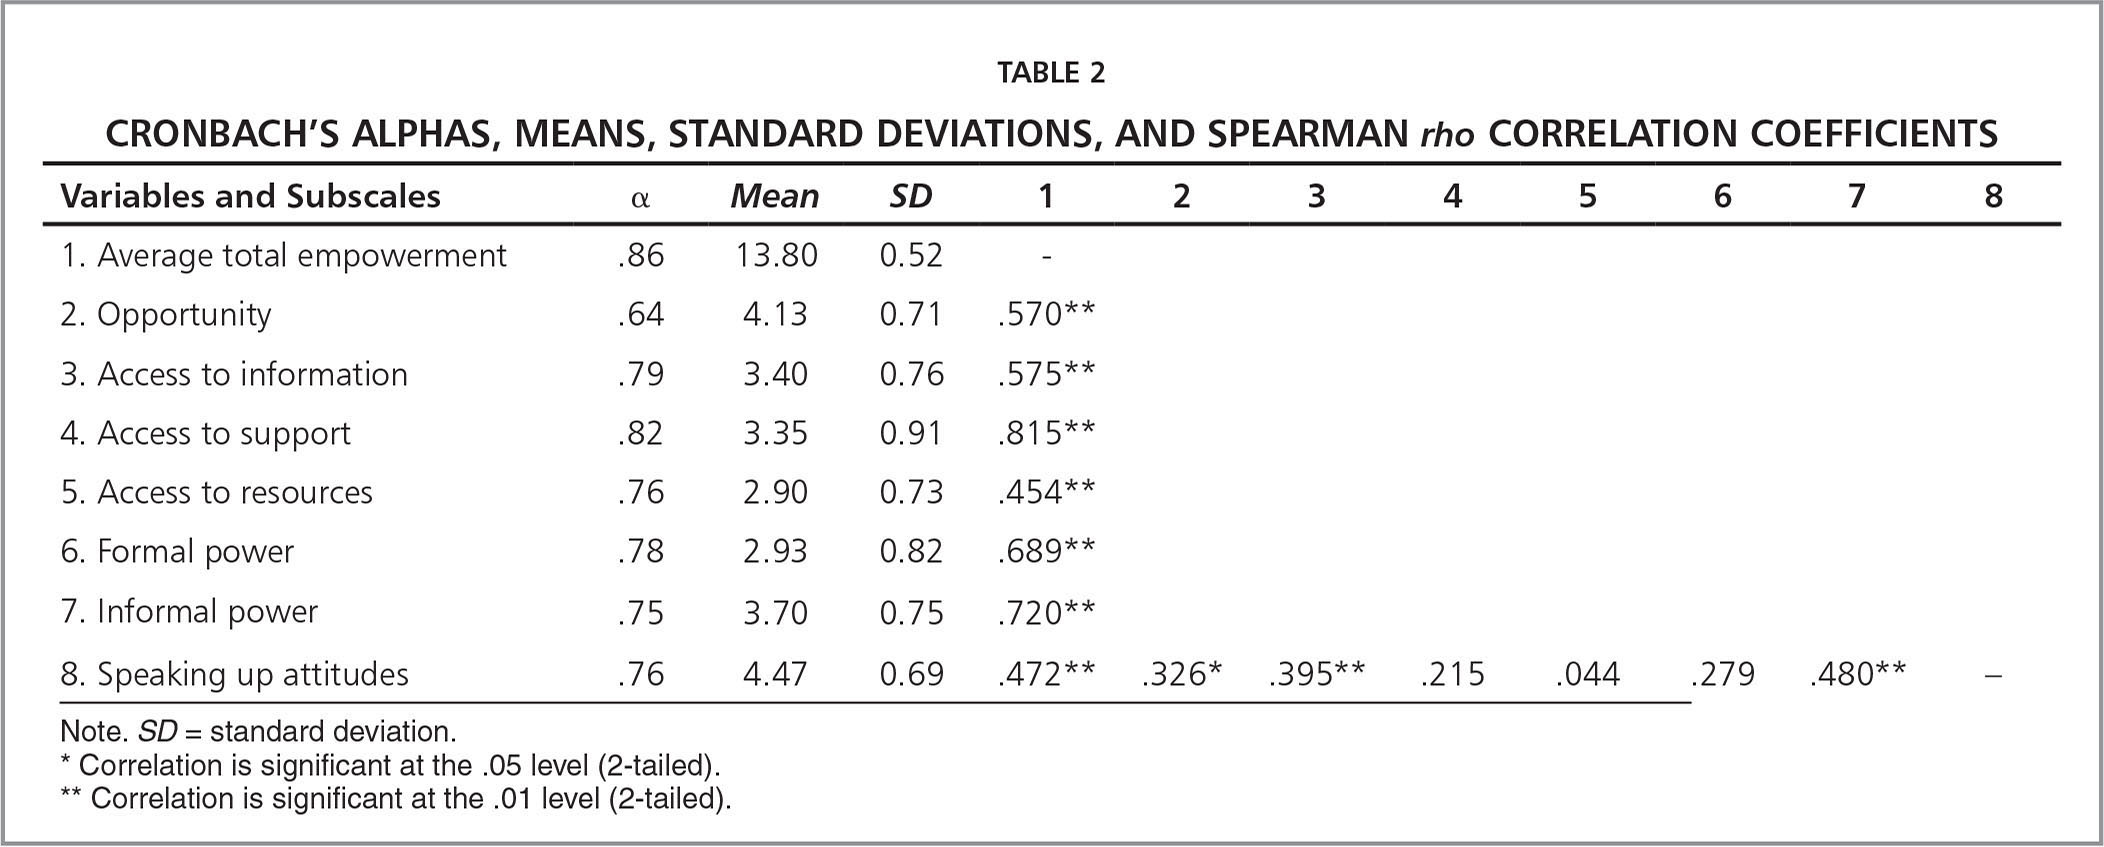 Cronbach's Alphas, Means, Standard Deviations, and Spearman rho Correlation Coefficients